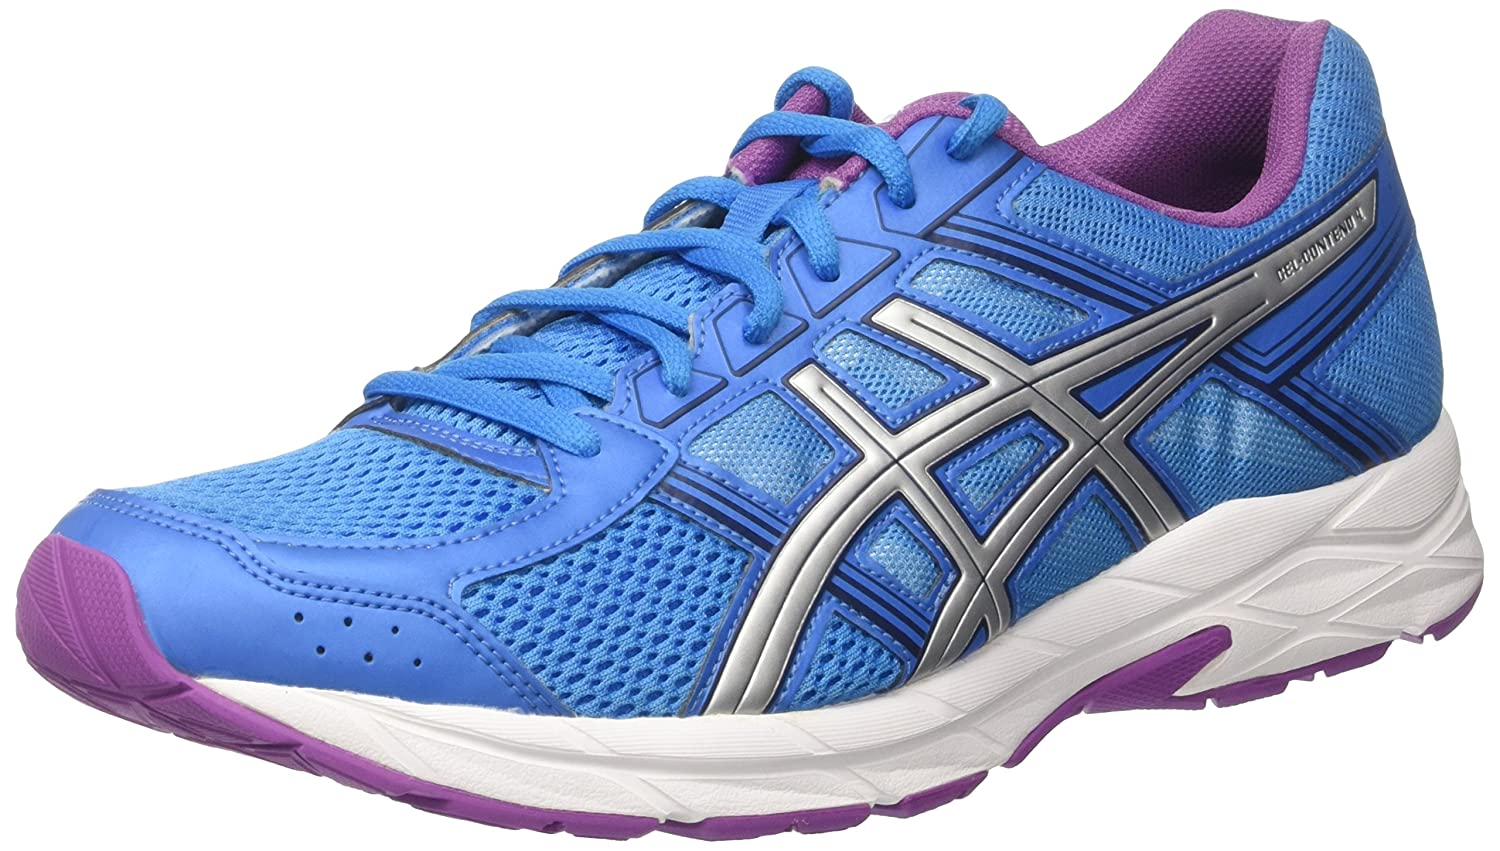 outlet store 1b760 1f4fc ASICS Women s Gel-Contend 4 Competition Running Shoes Multicolor (Diva  Blue Silver Orchid) 3 UK  Amazon.in  Shoes   Handbags